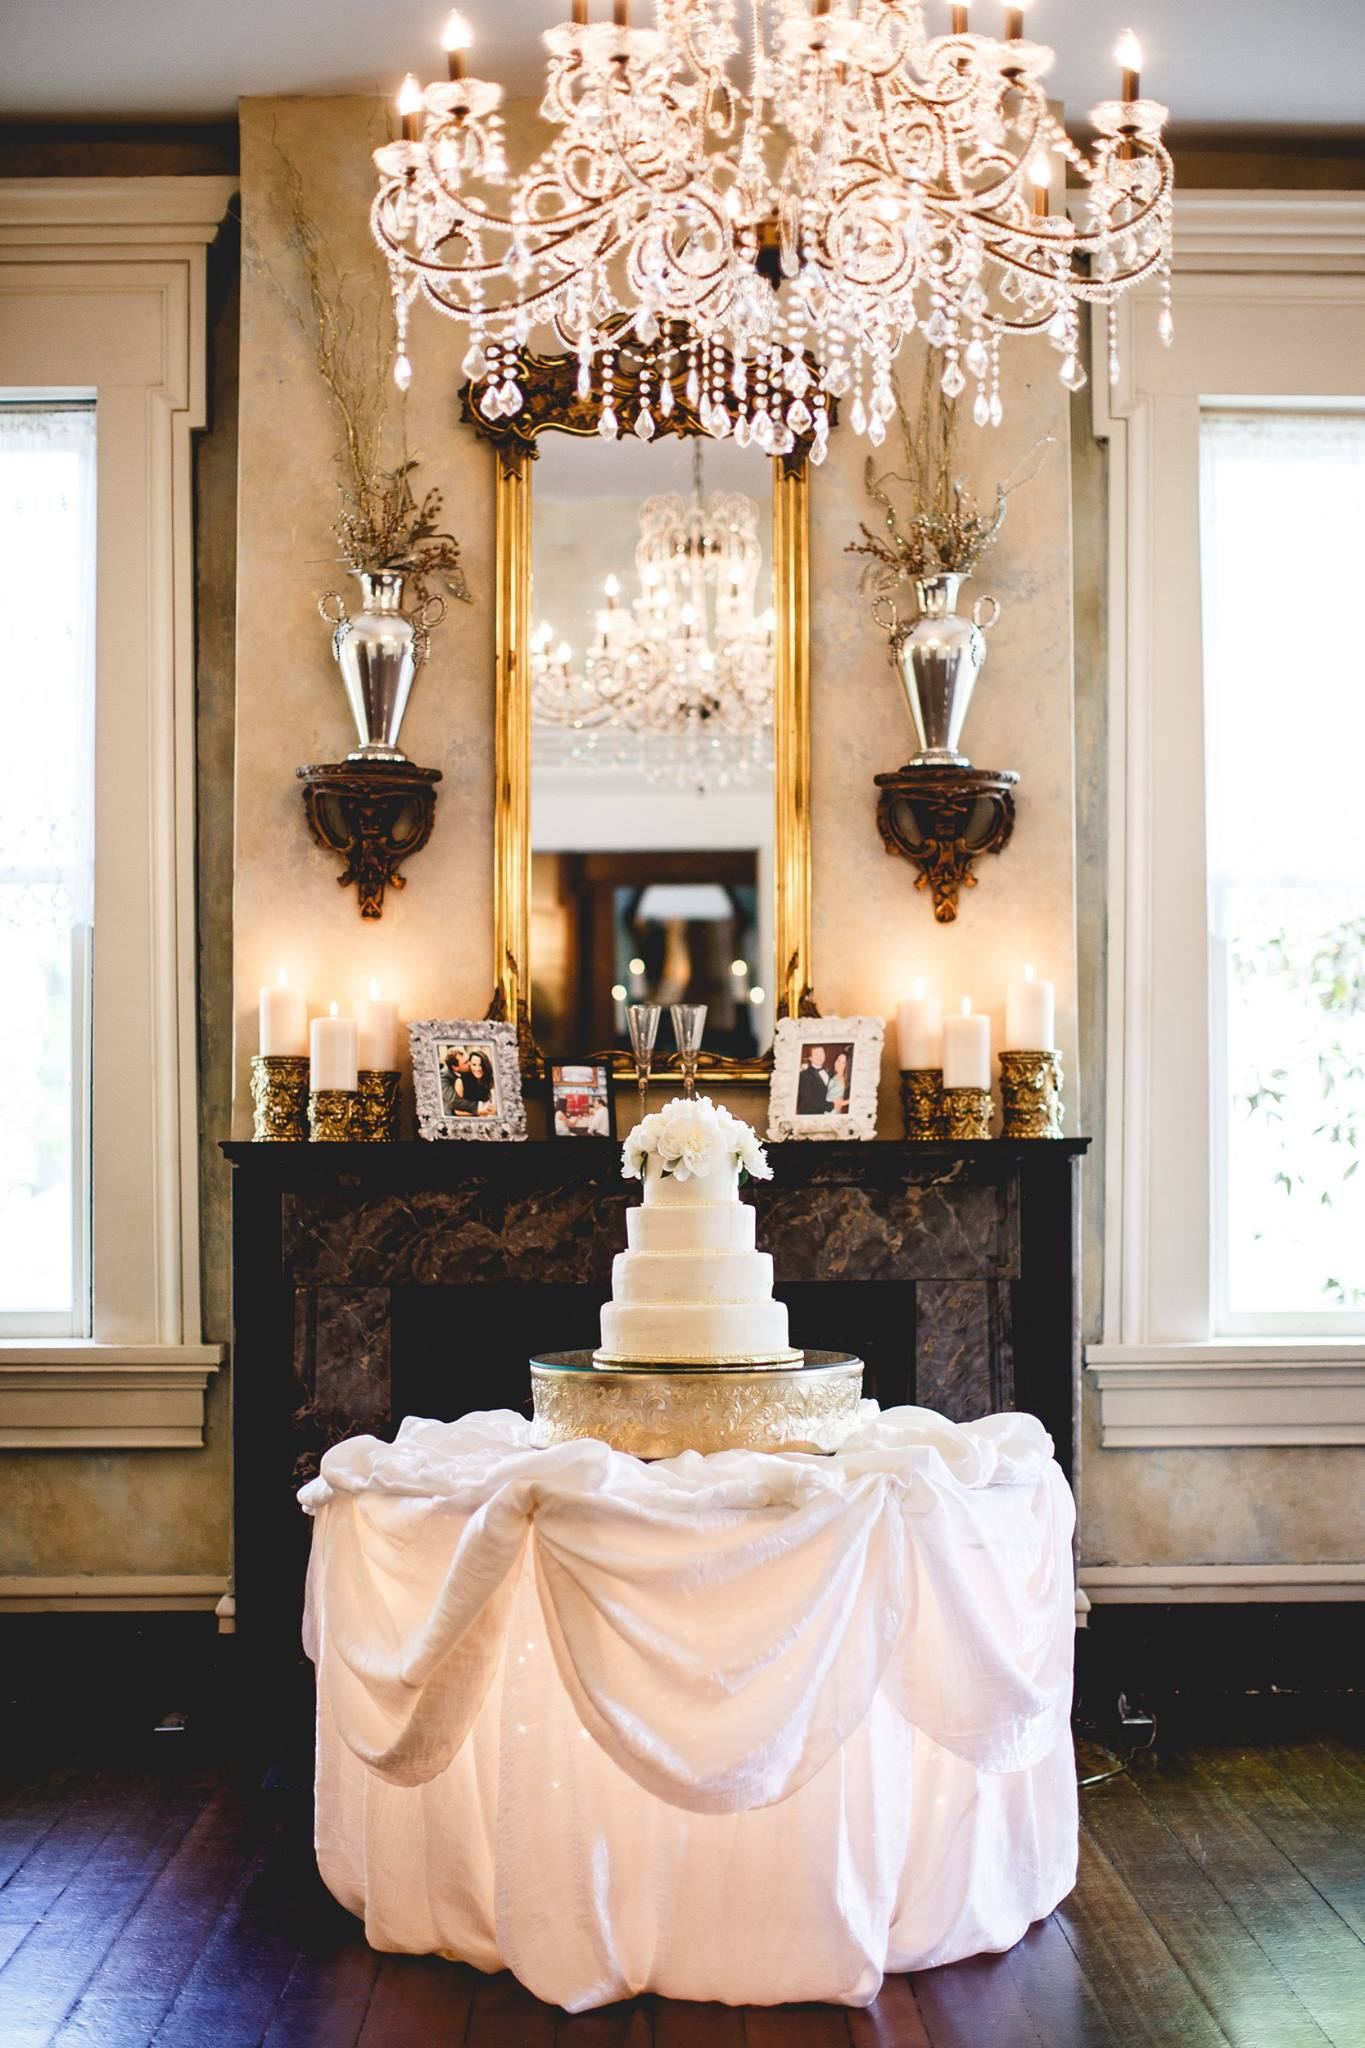 A white wedding cake is always classic and elegant. Add overflowing fresh white florals to dress up the top tier and to match the bridal bouquet.   Photo: Janelle Elise Photography